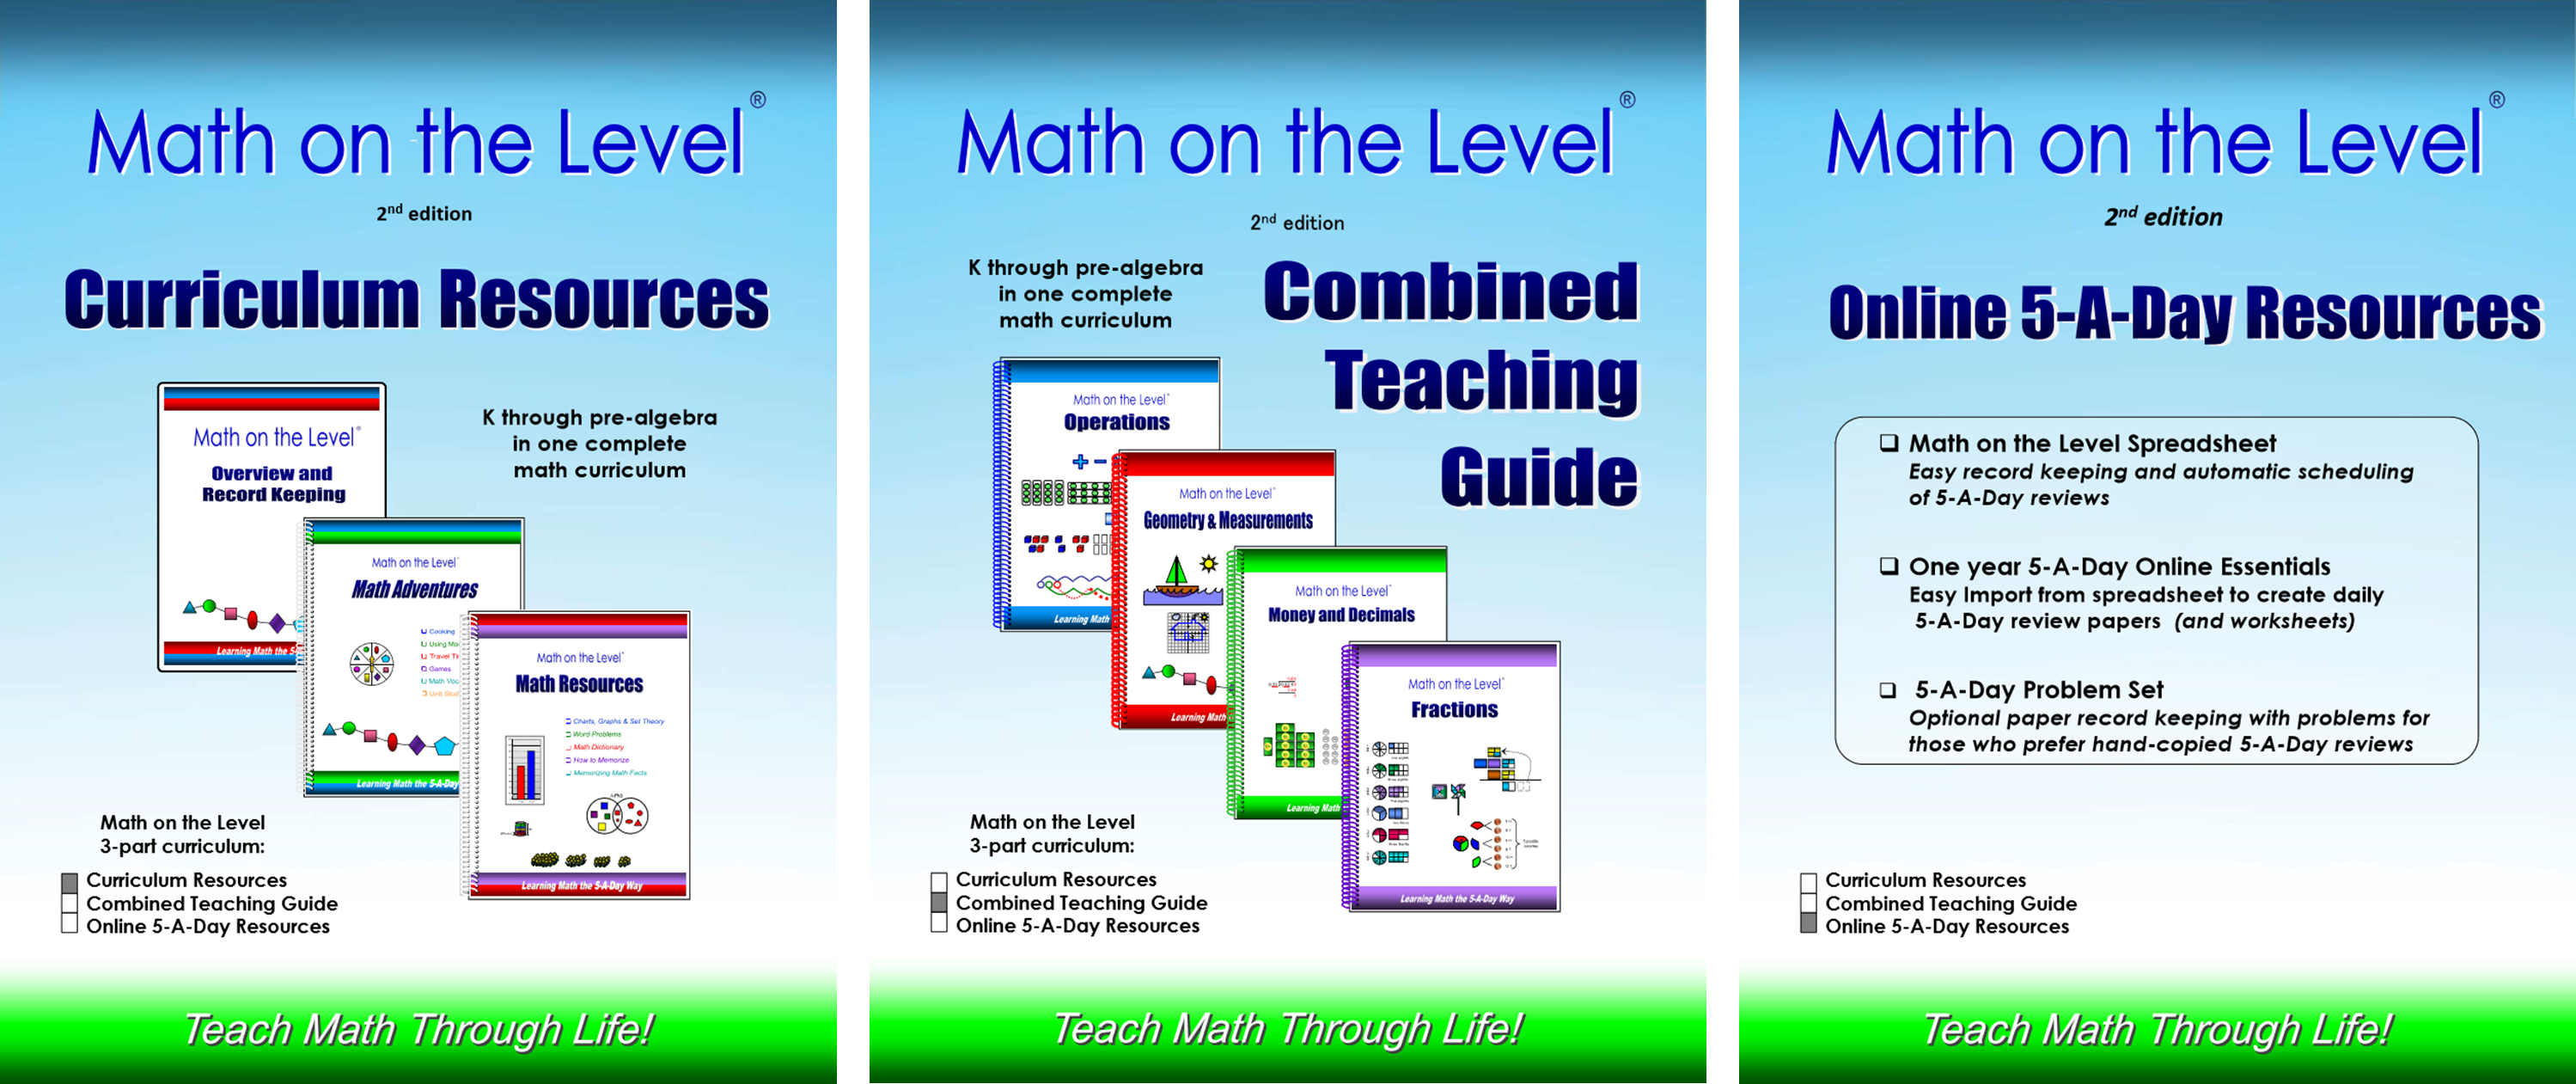 Math on the Level 2nd Edition